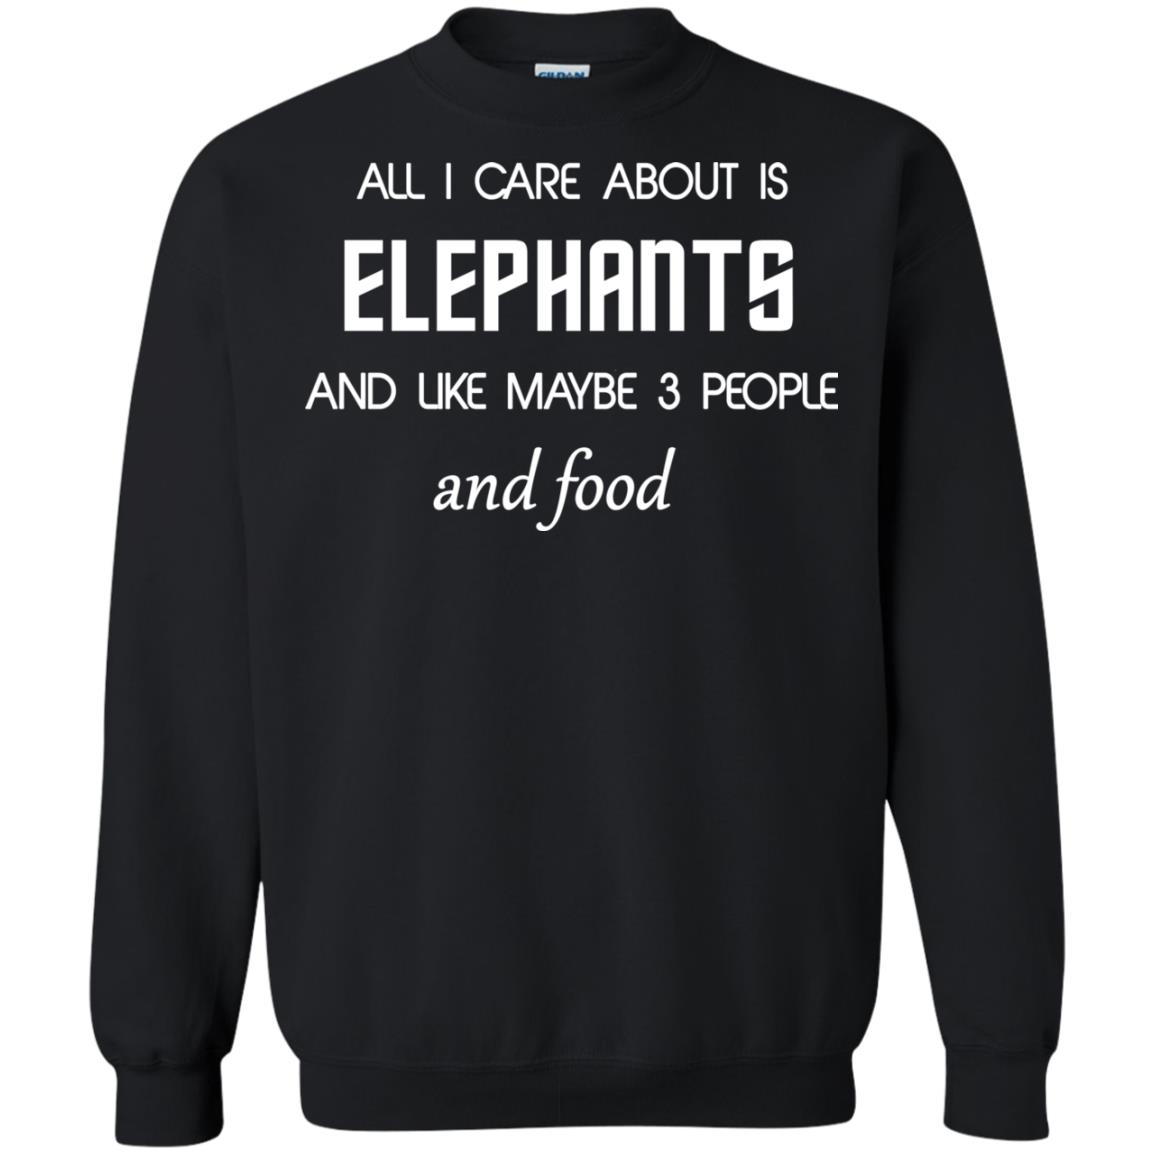 image 4199 - All I care about is elephants shirt, hoodie, sweater